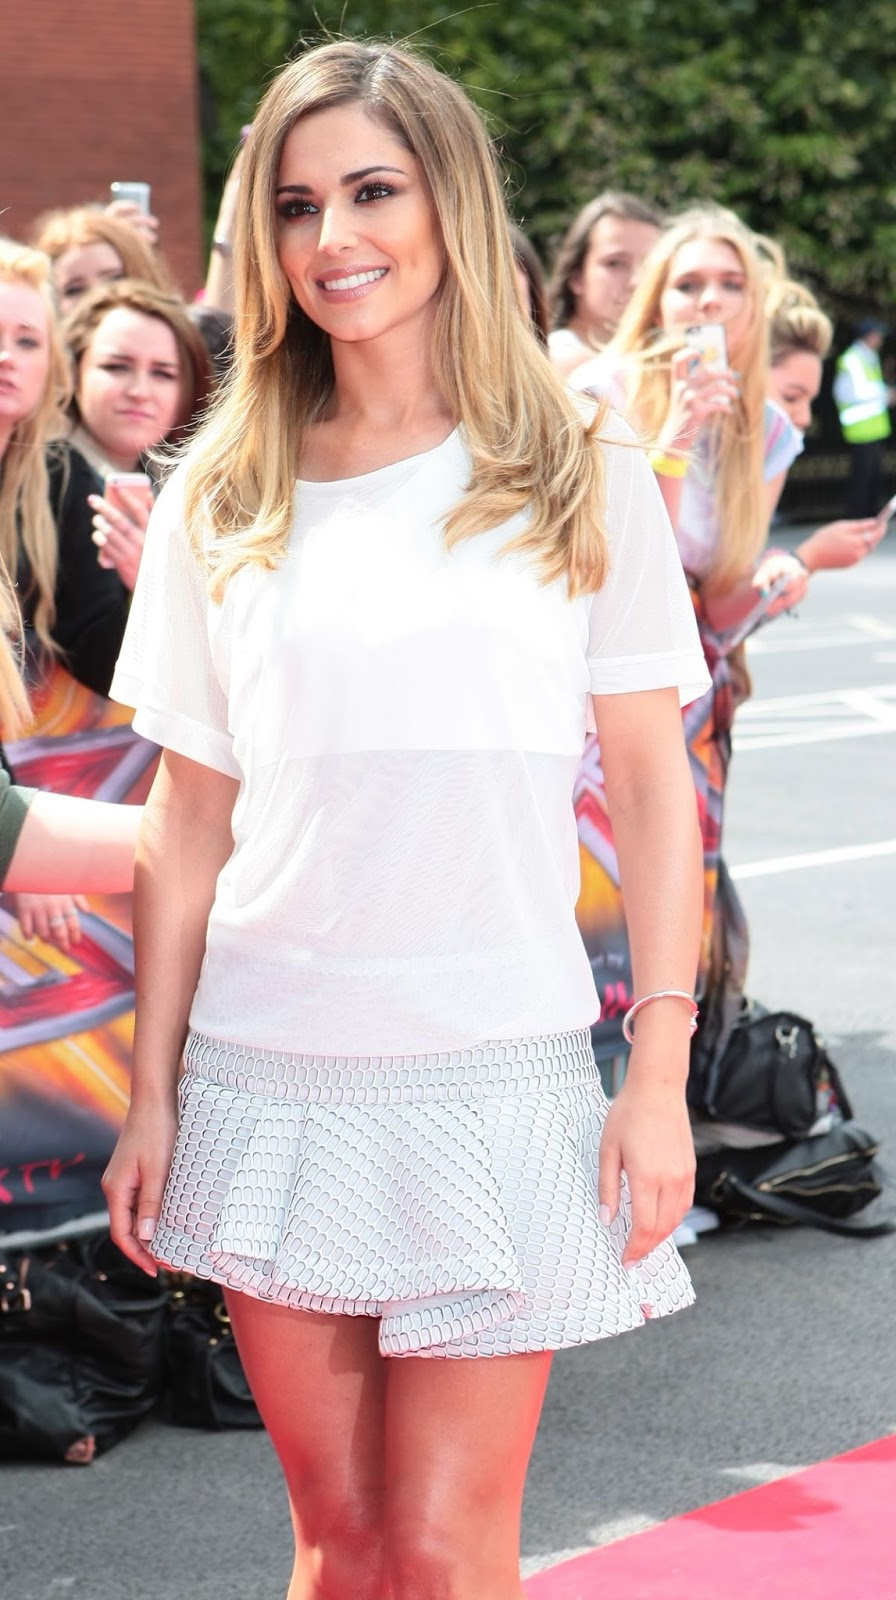 HD Photos of Cheryl Cole at The X Factor Auditions in Manchester